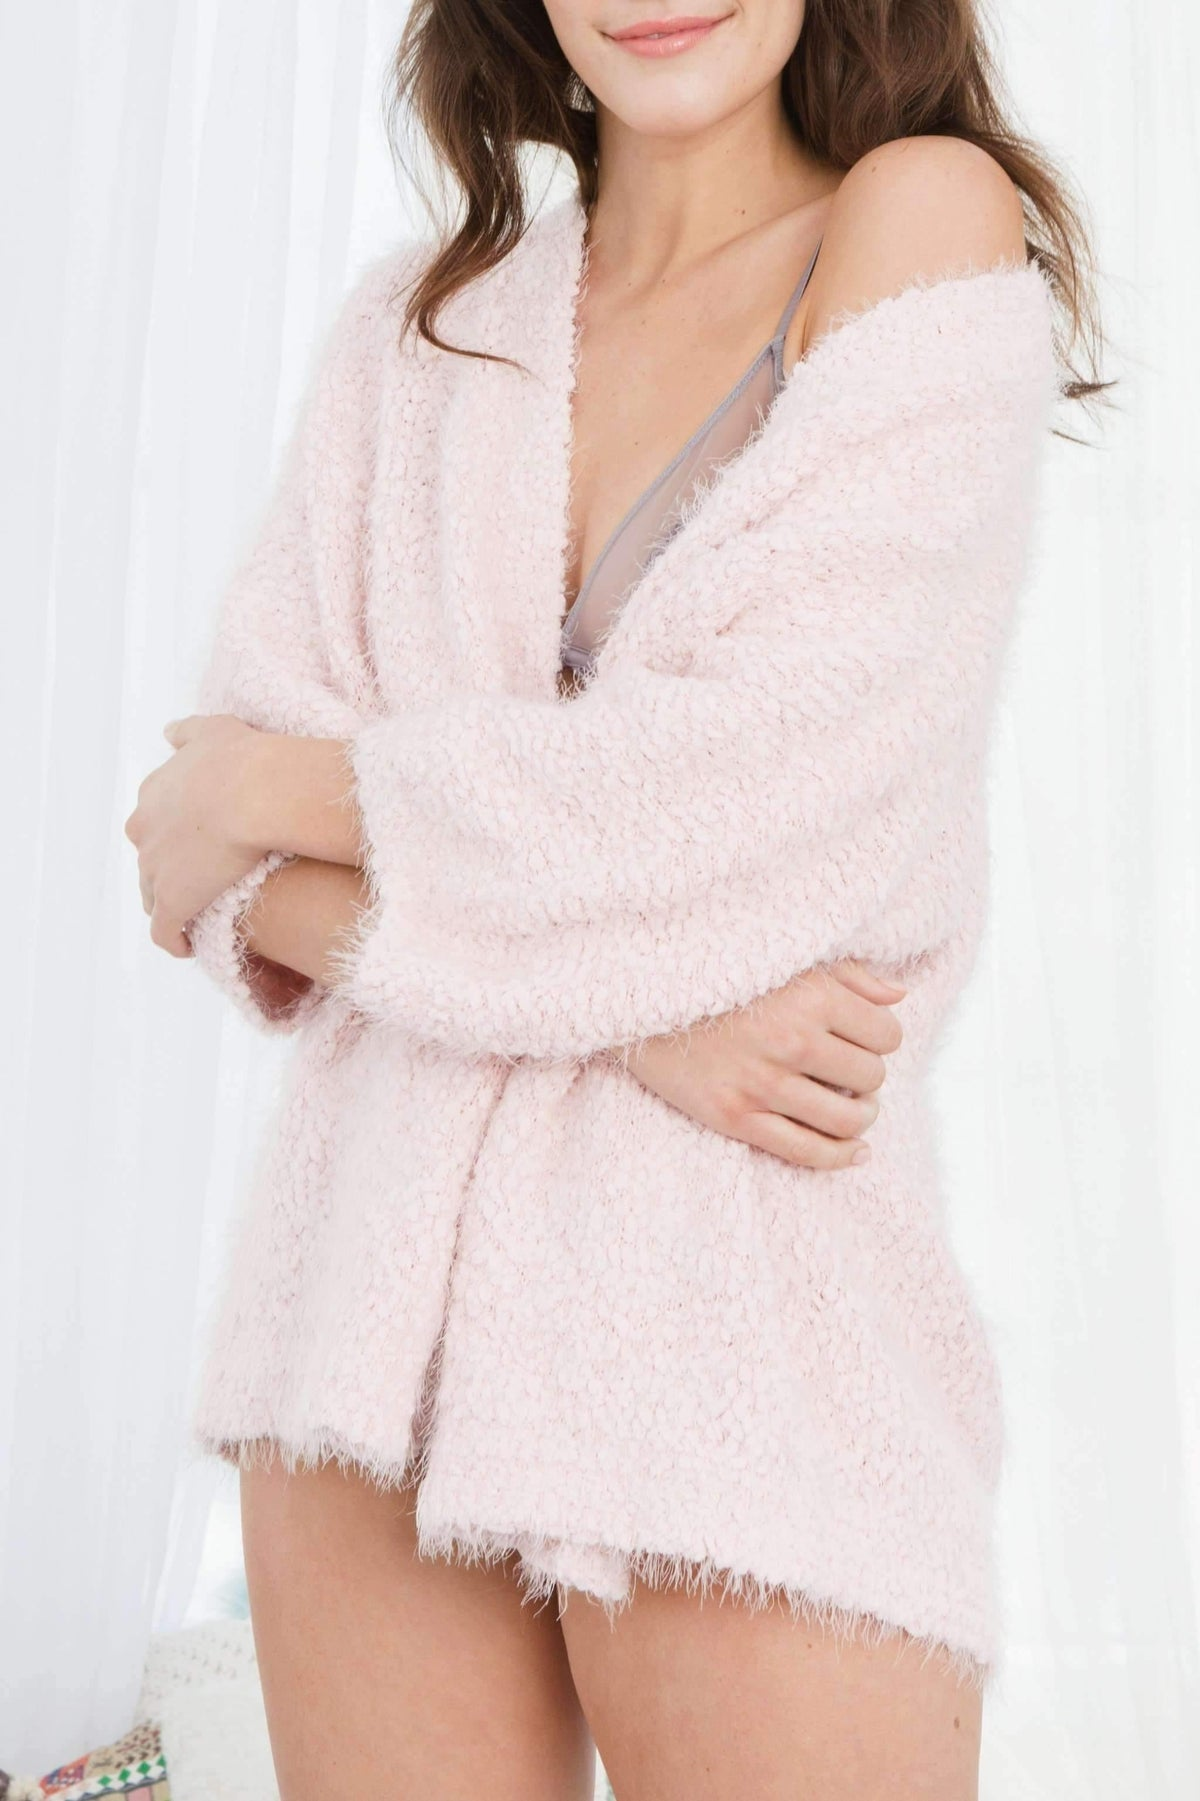 Winter Breaker Popcorn Wrap-Sleepshirt-Honeydew Intimates-Honeydew Intimates